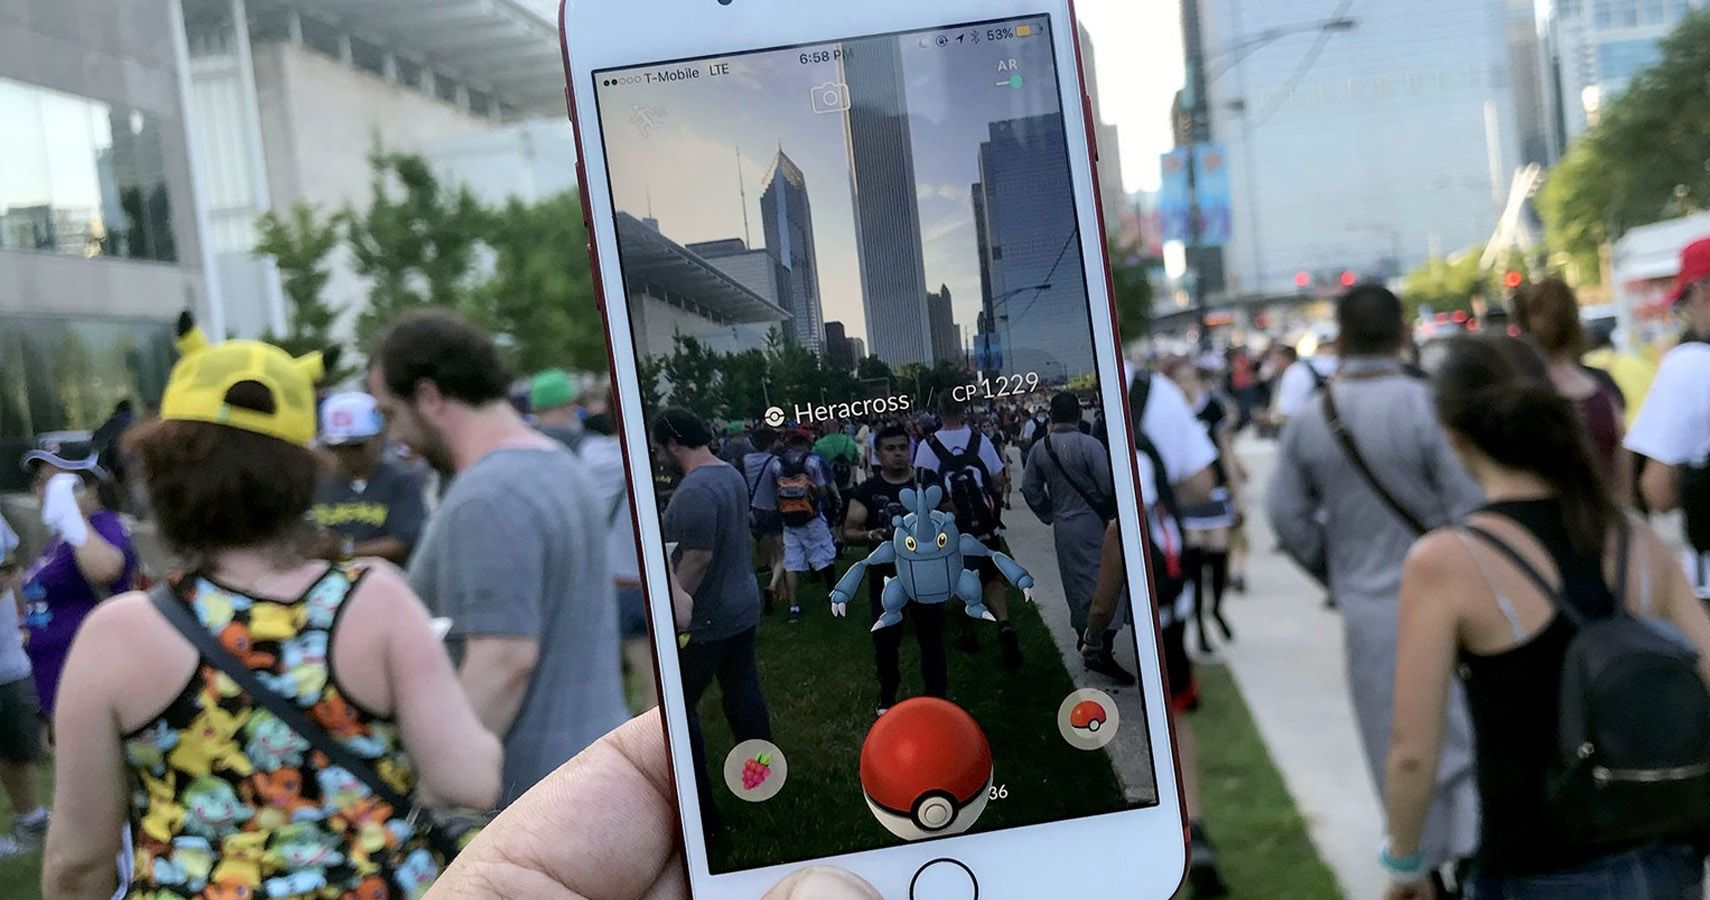 The 10 Best Cities For Pokémon Go Players To Explore | TheTravel